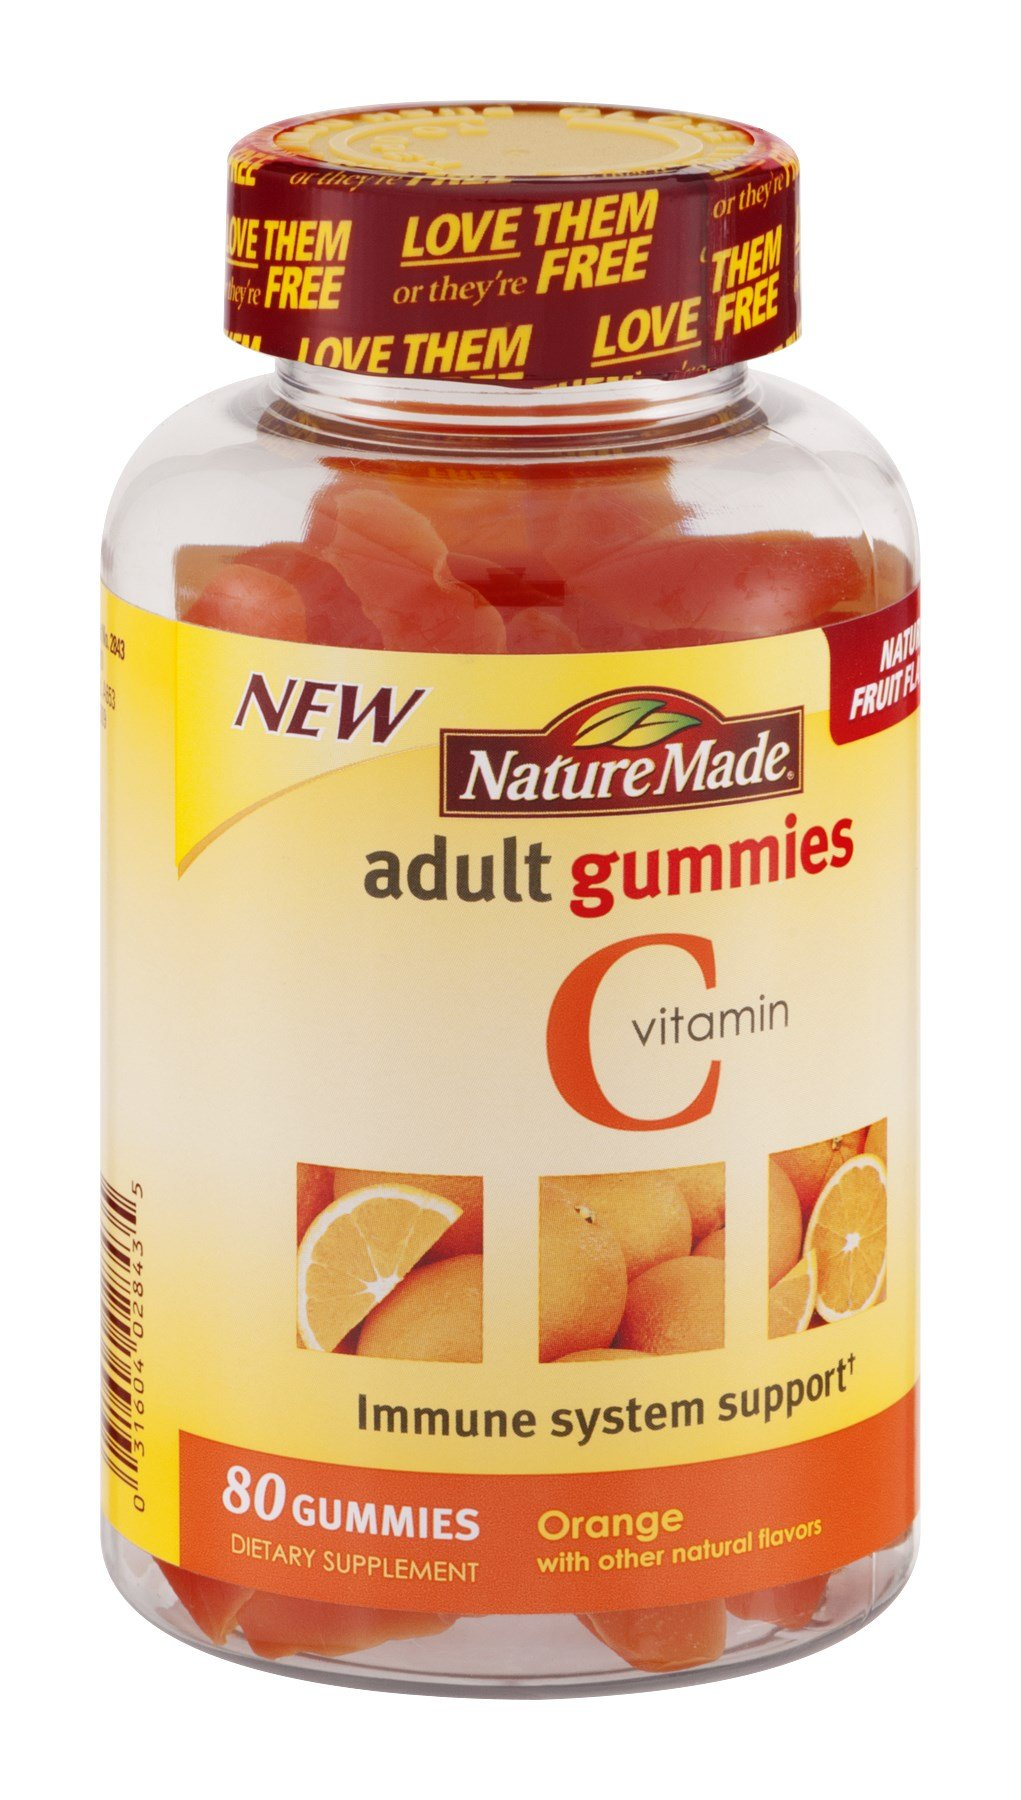 Nature Made Nat Made Orng Vitamin C Adult Gummy 80 Chw, Pack of 9